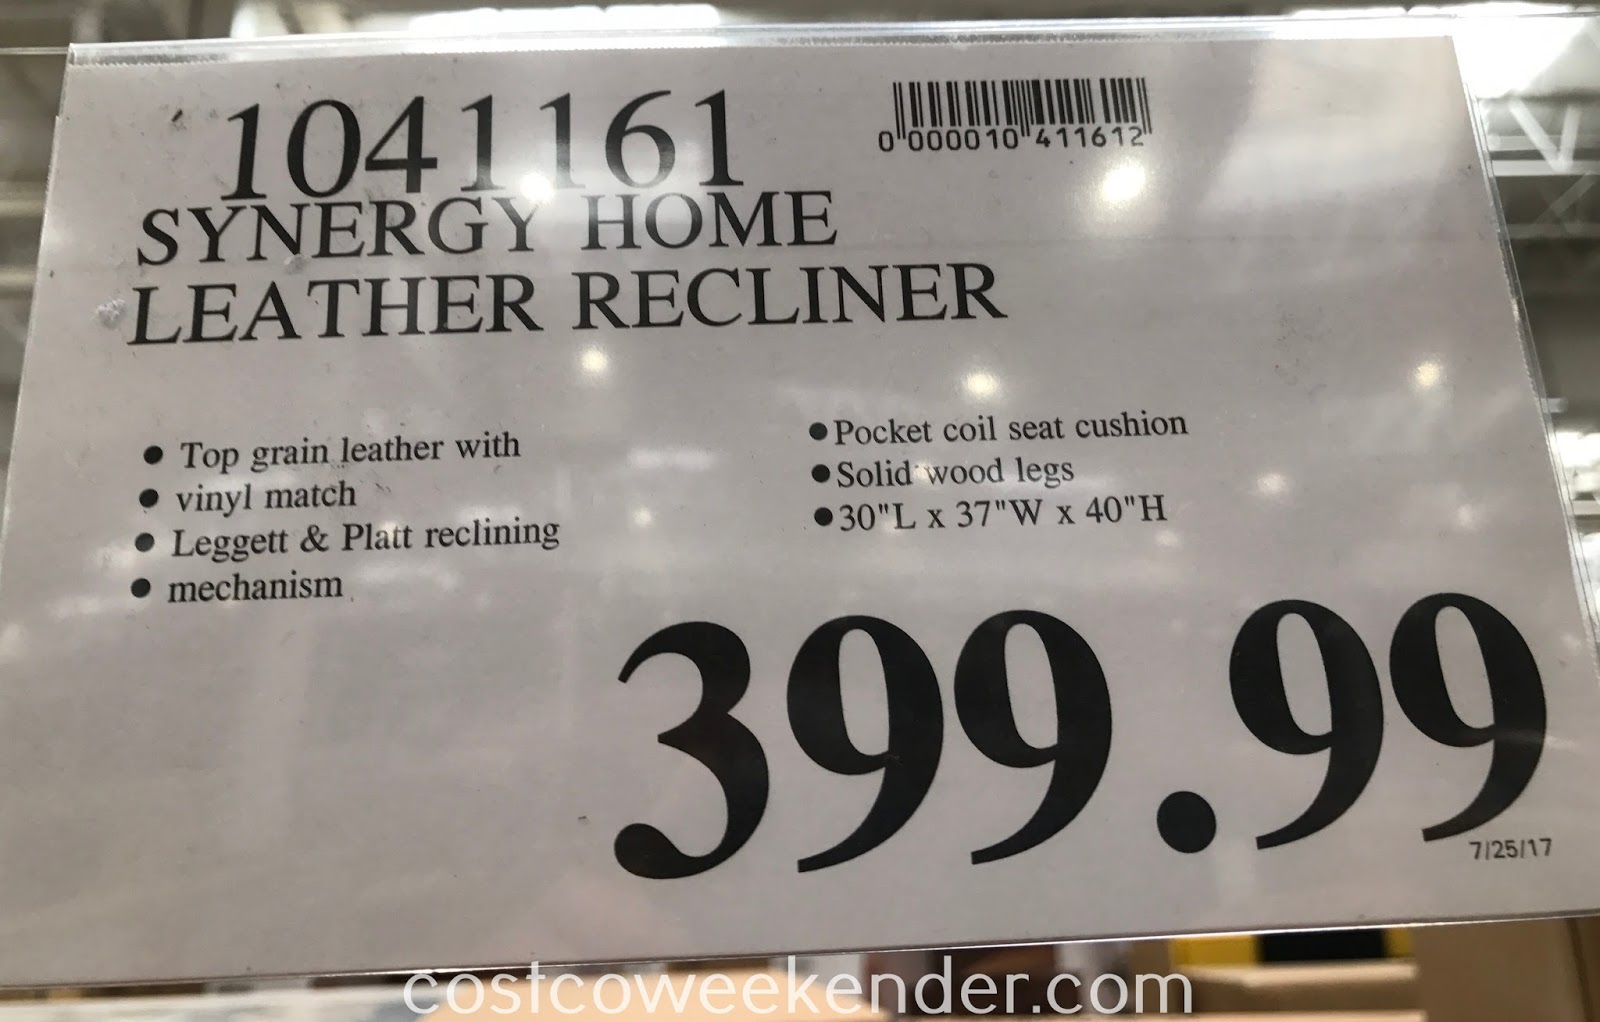 Deal for the Synergy Home Leather Recliner at Costco